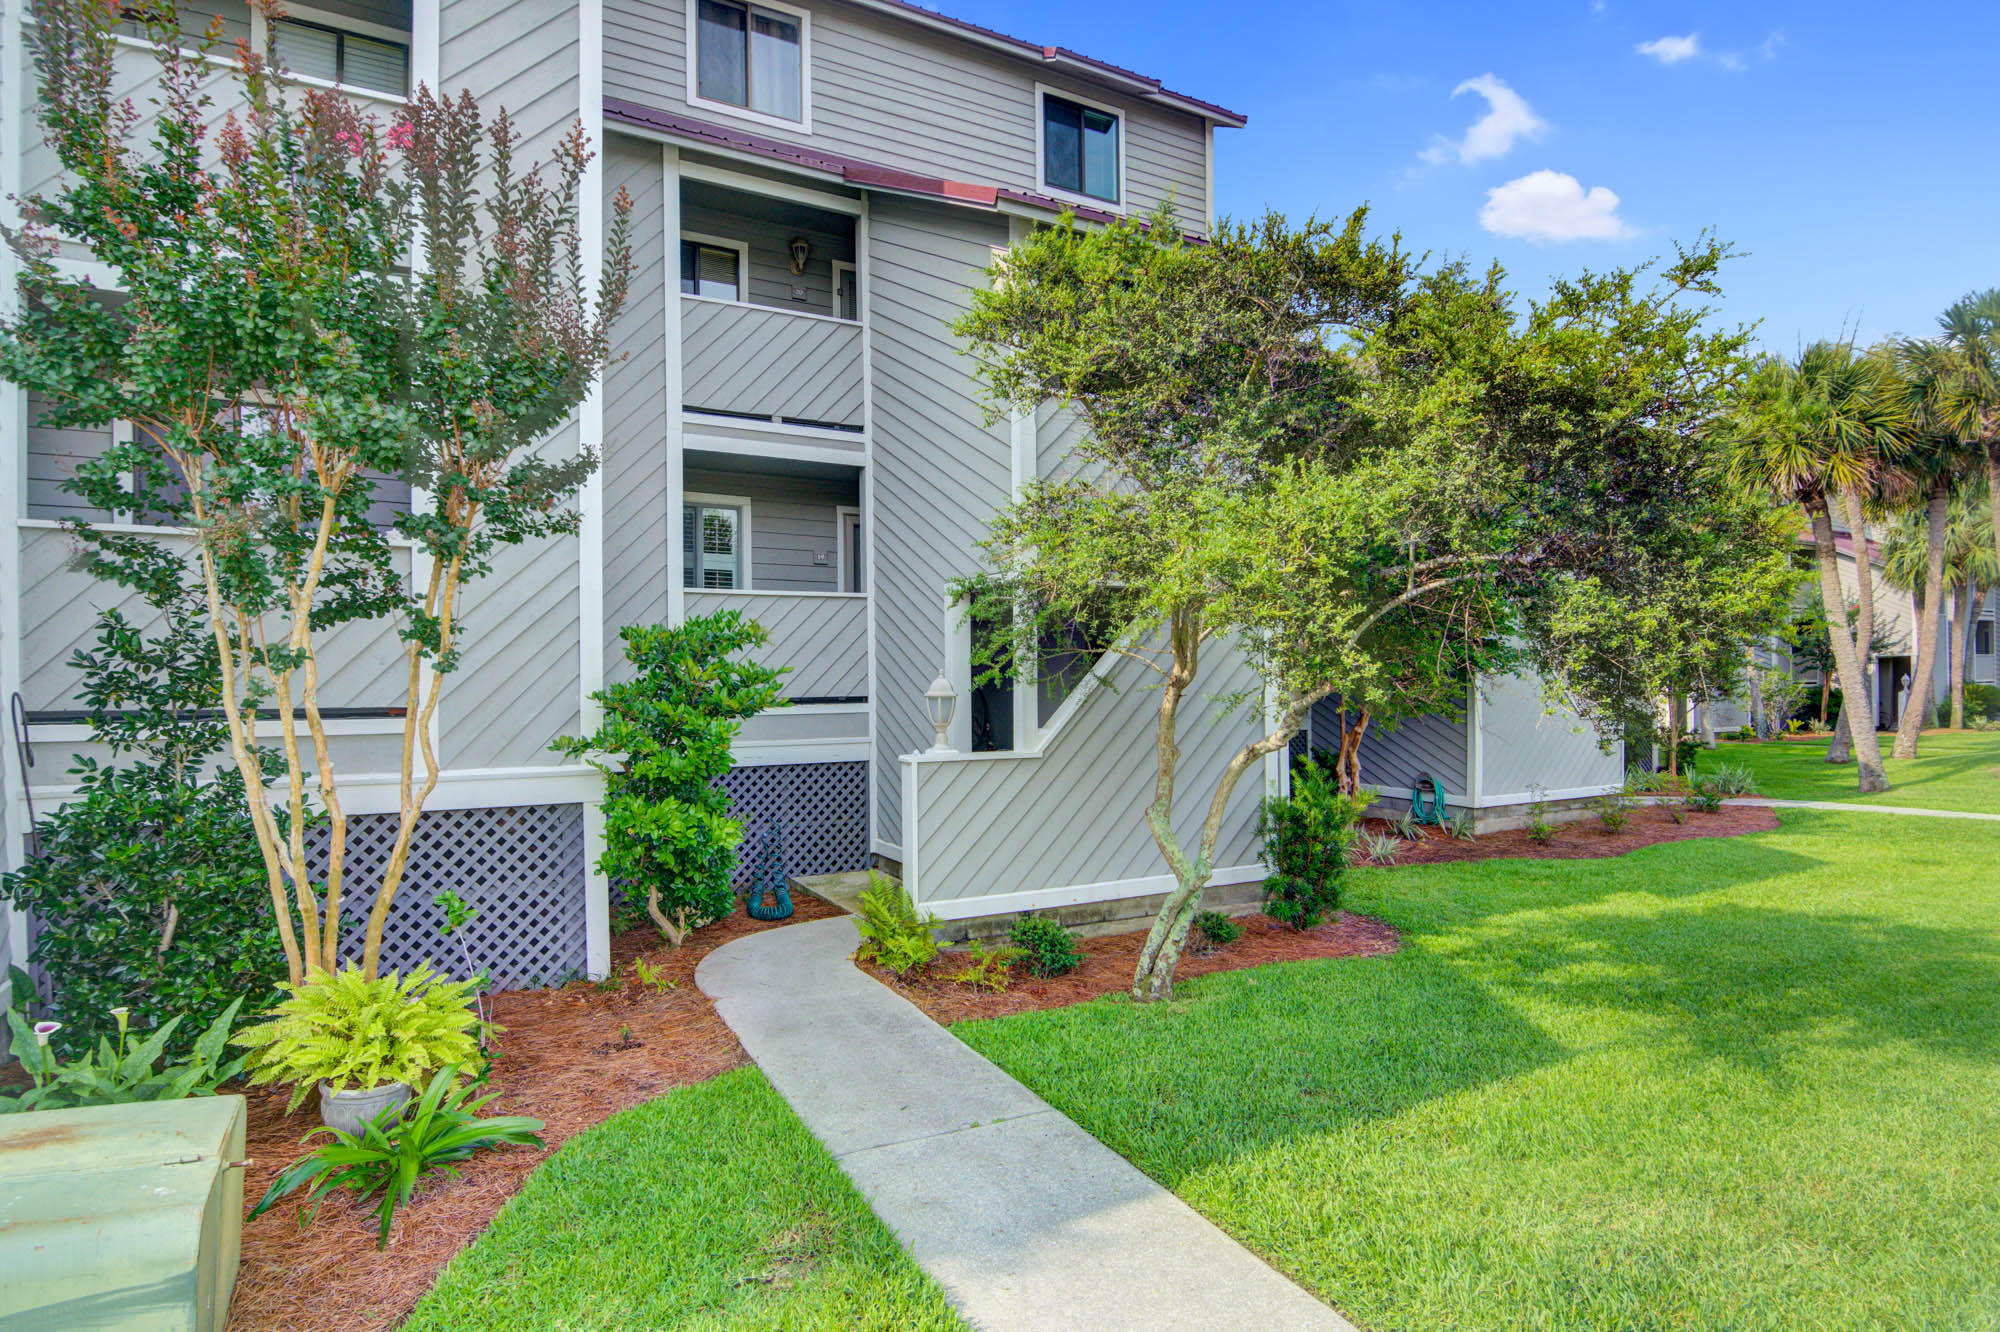 Mariners Cay Homes For Sale - 19 Mariners Cay, Folly Beach, SC - 22